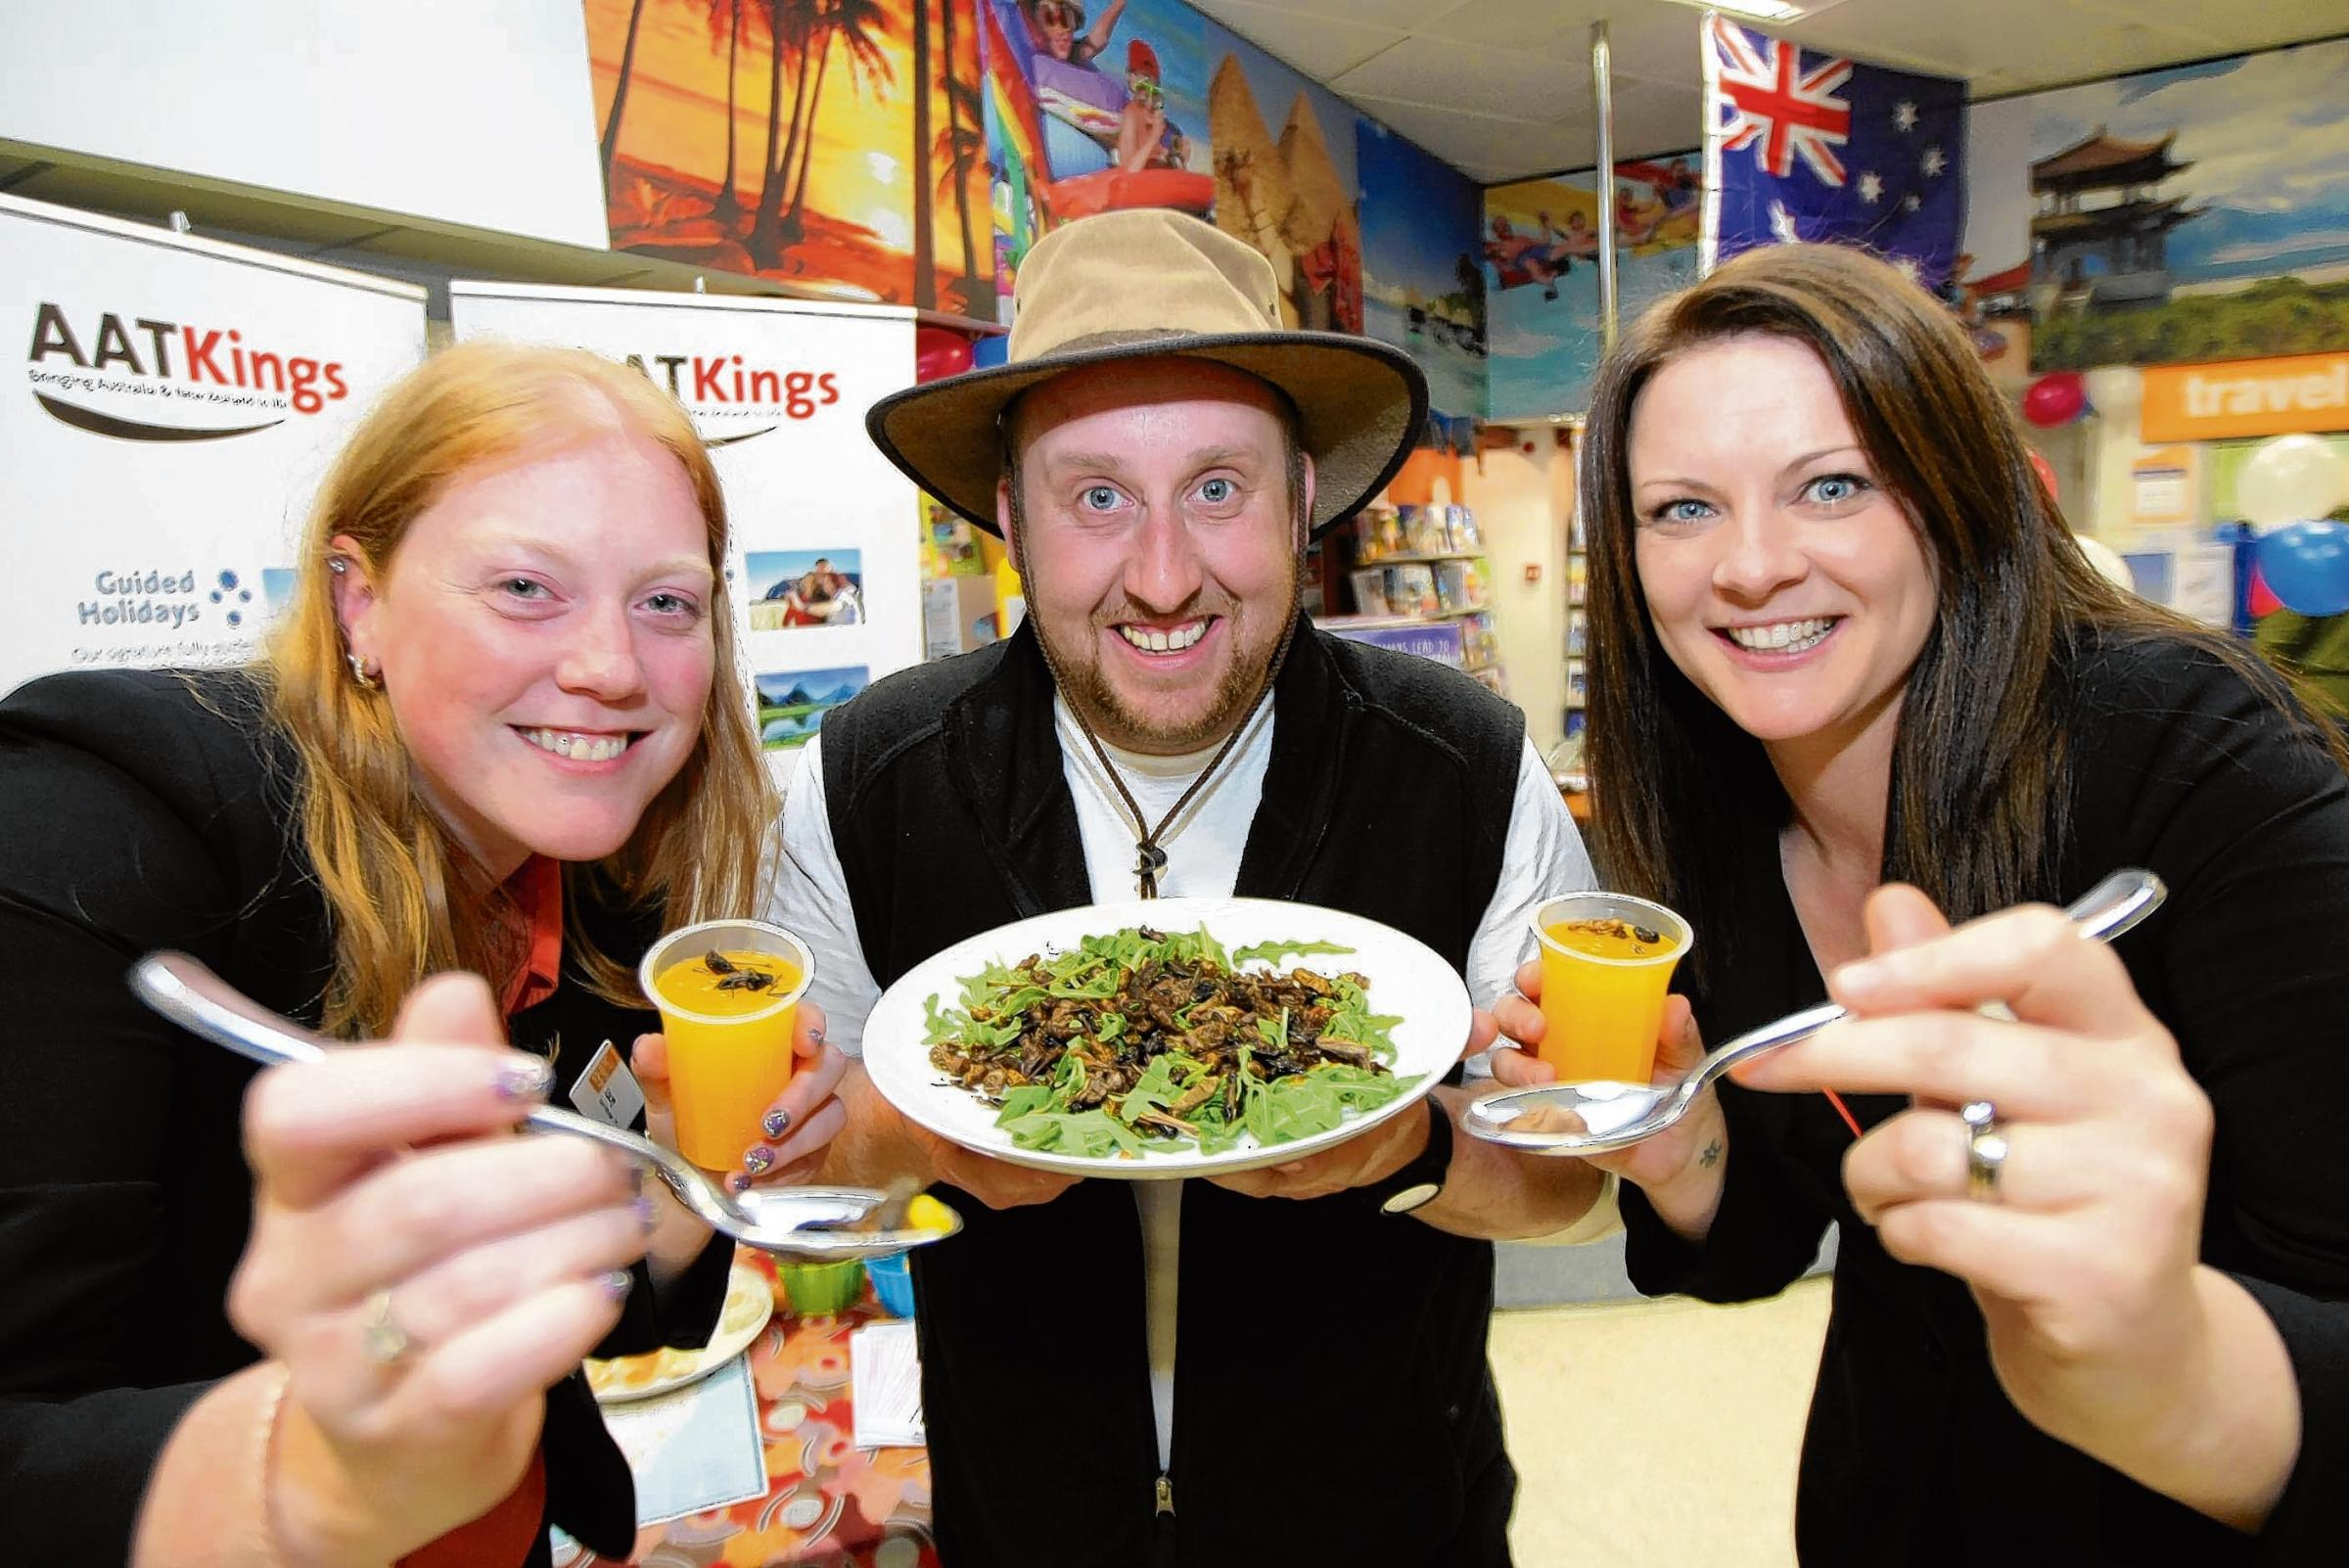 Stacey Turland, Andy Austen and Julie Cook sample some bushtucker